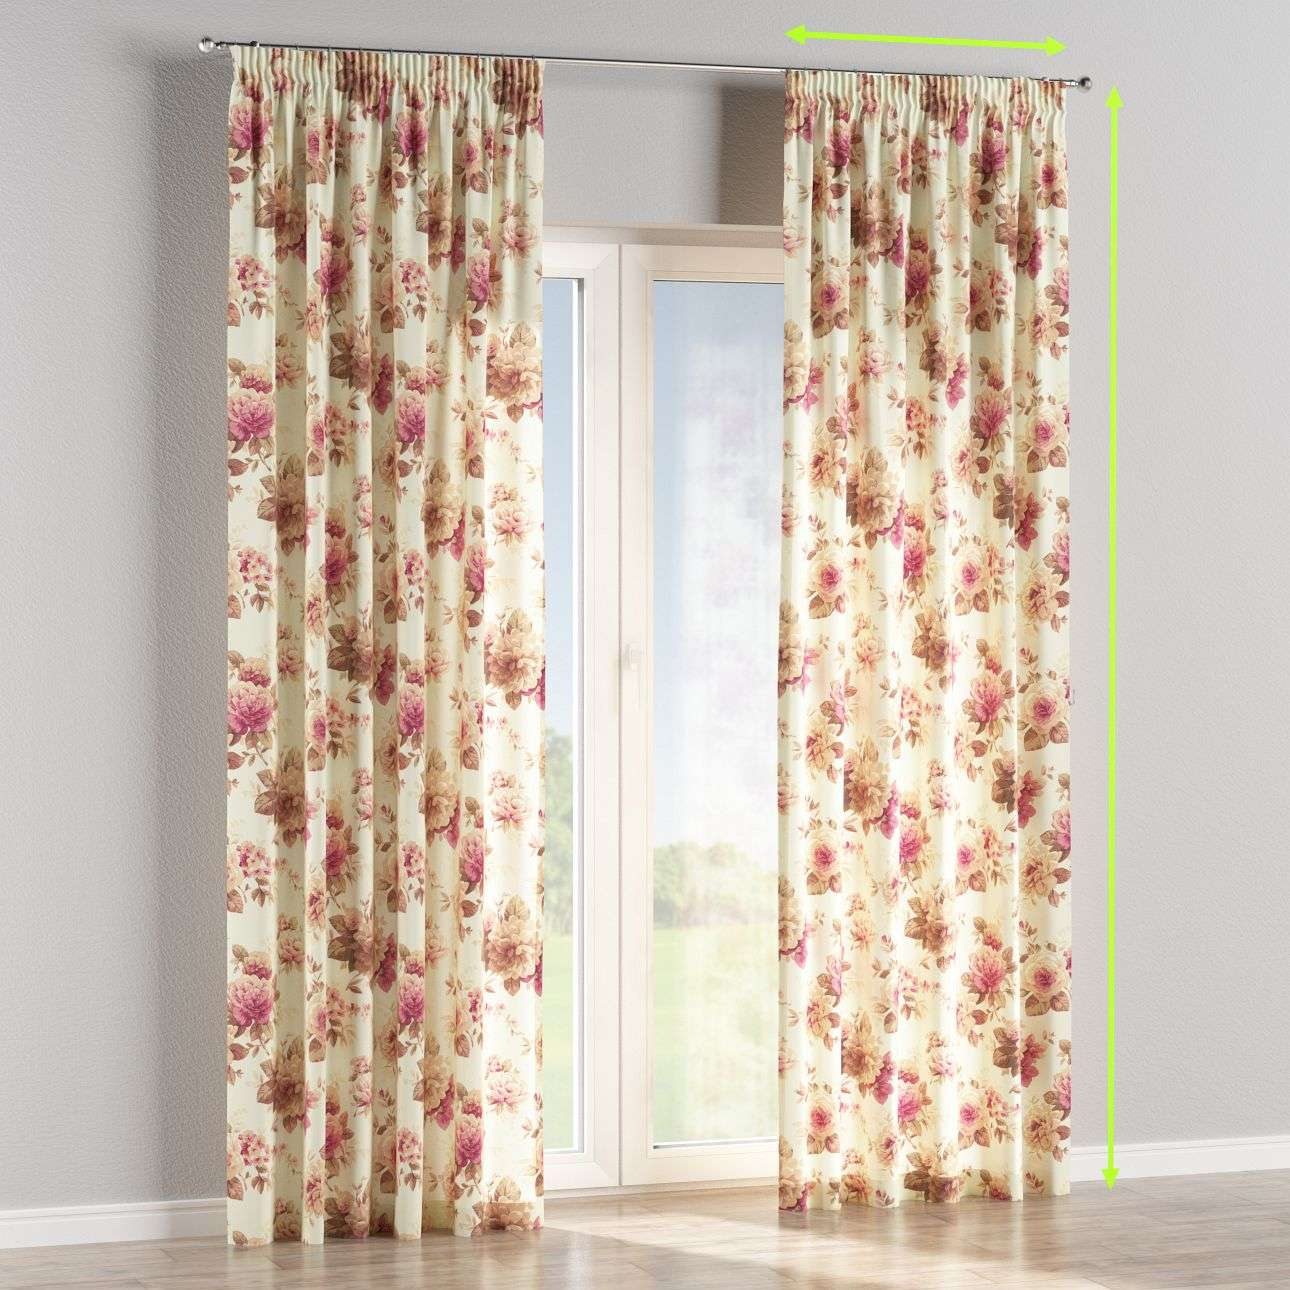 Pencil pleat curtain in collection Londres, fabric: 141-06